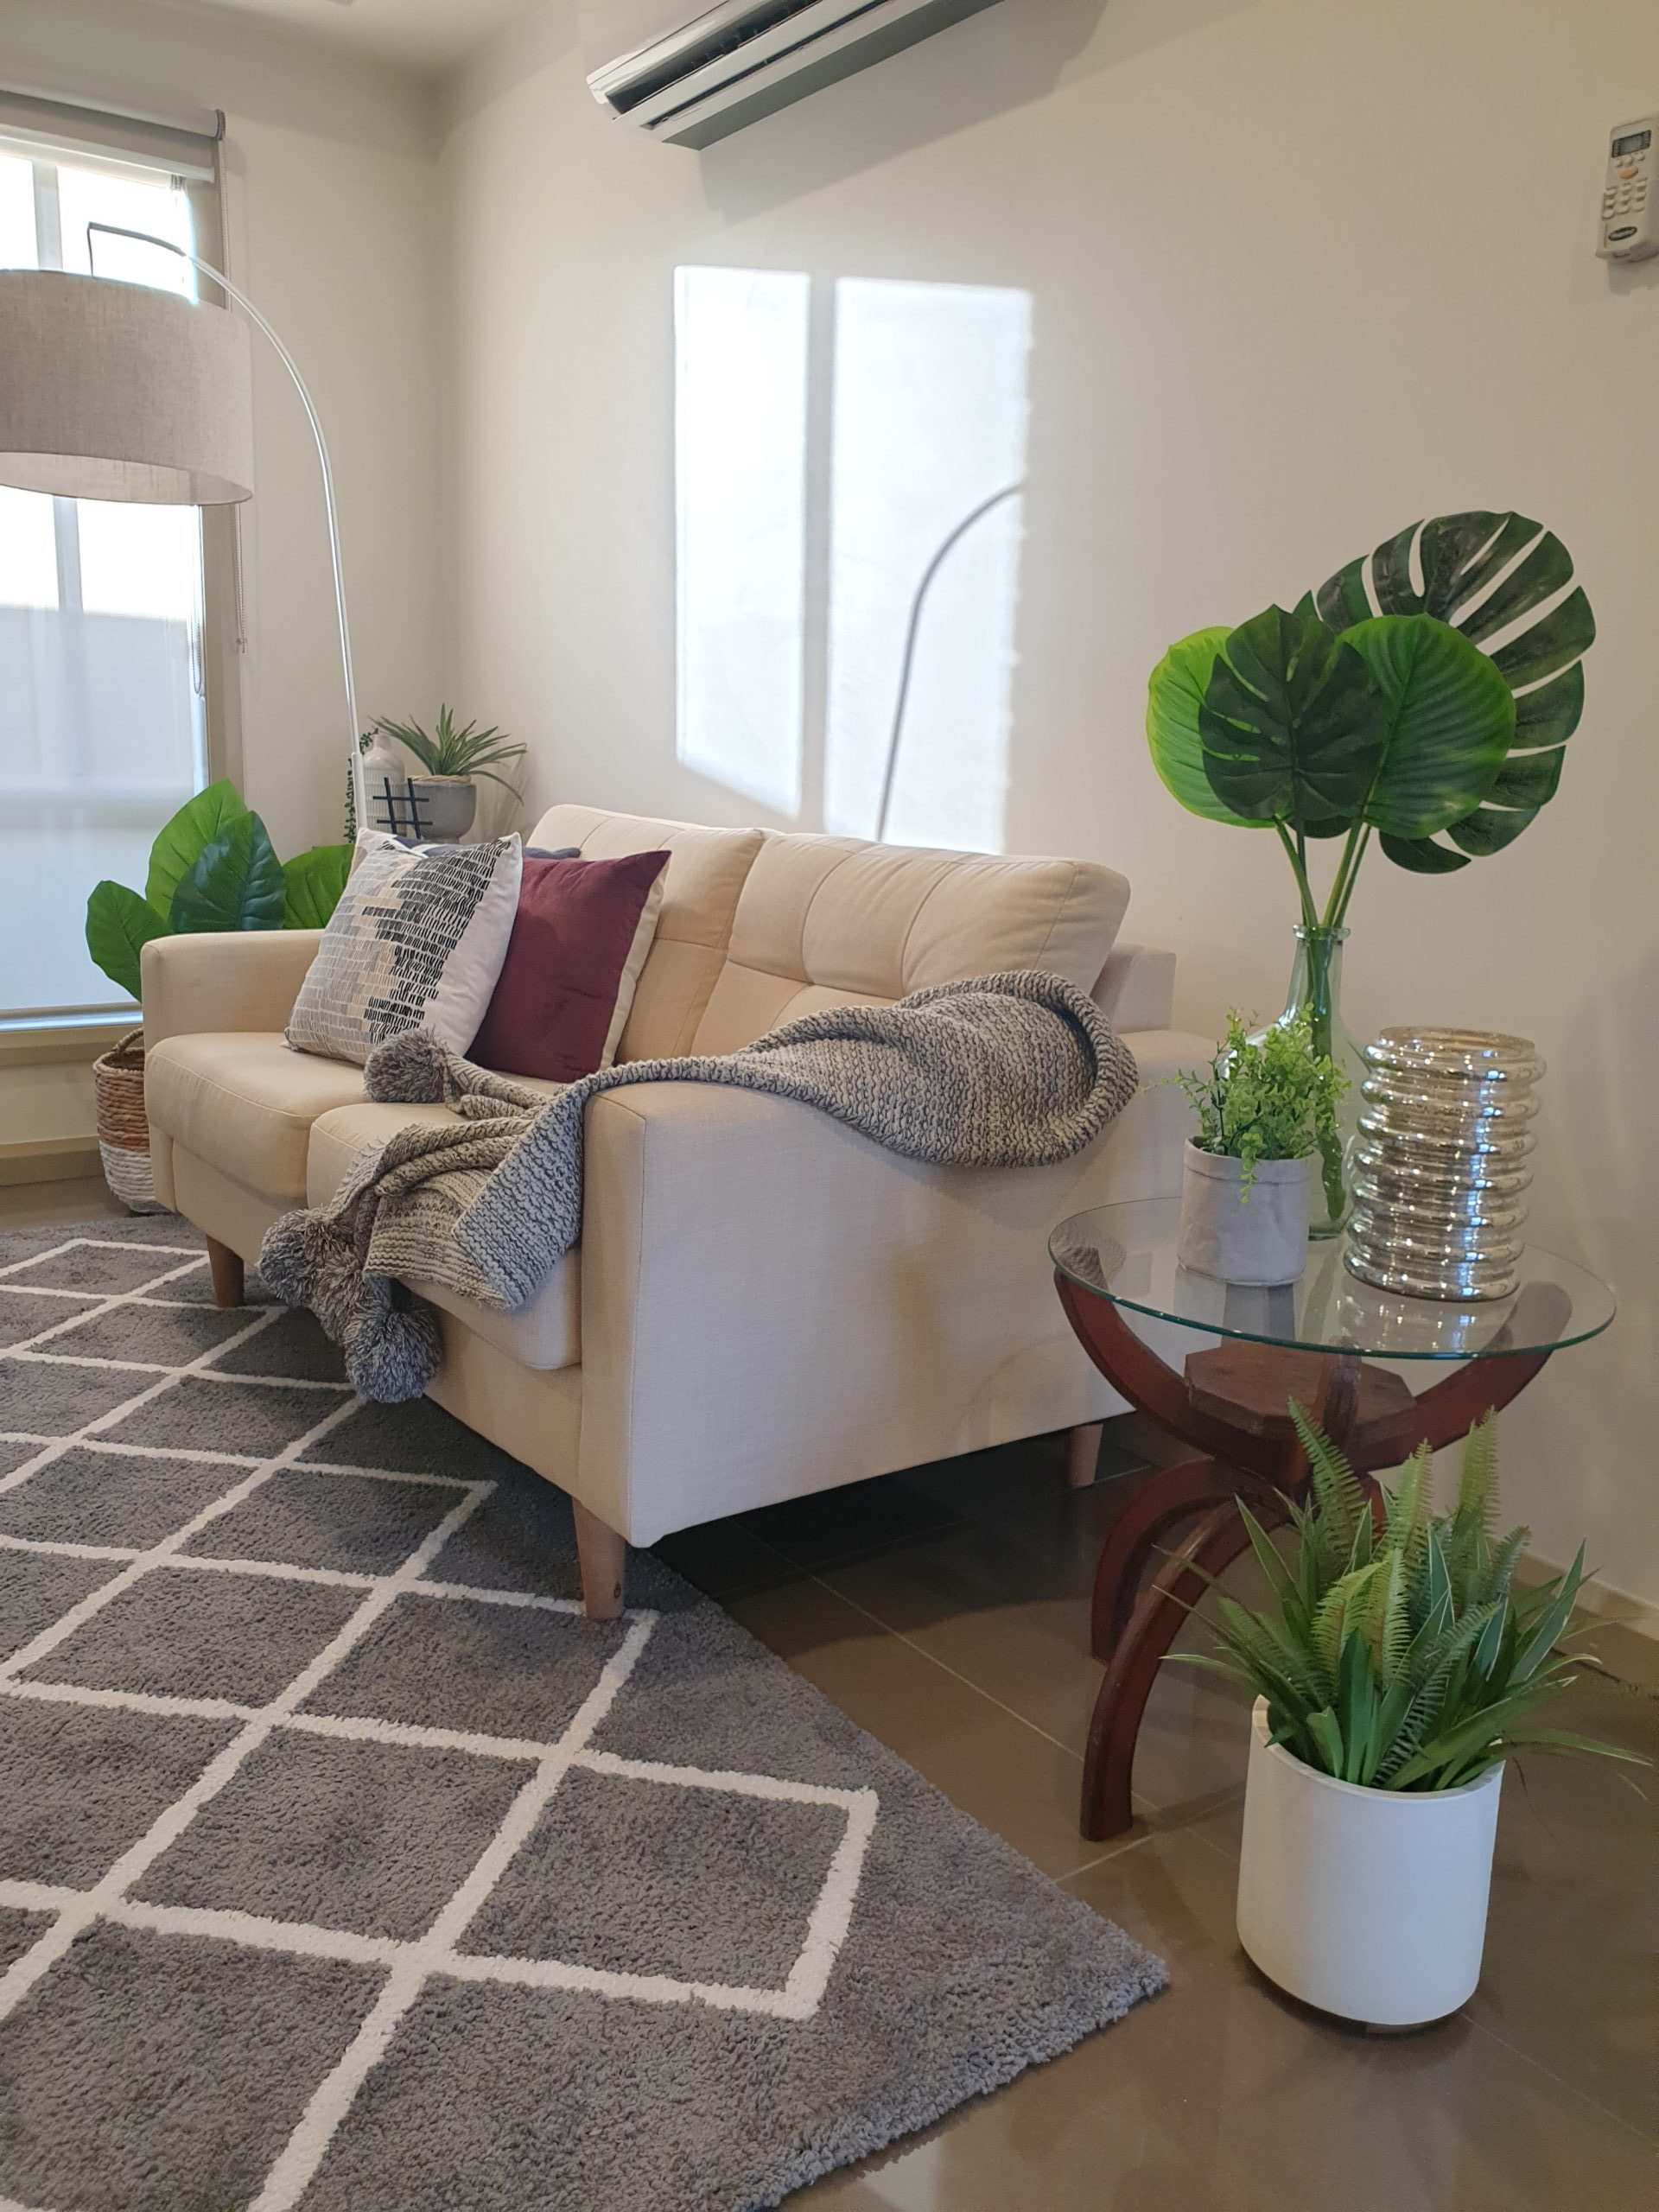 Rent or hire furniture for selling your property Chamberlain Property Advocates